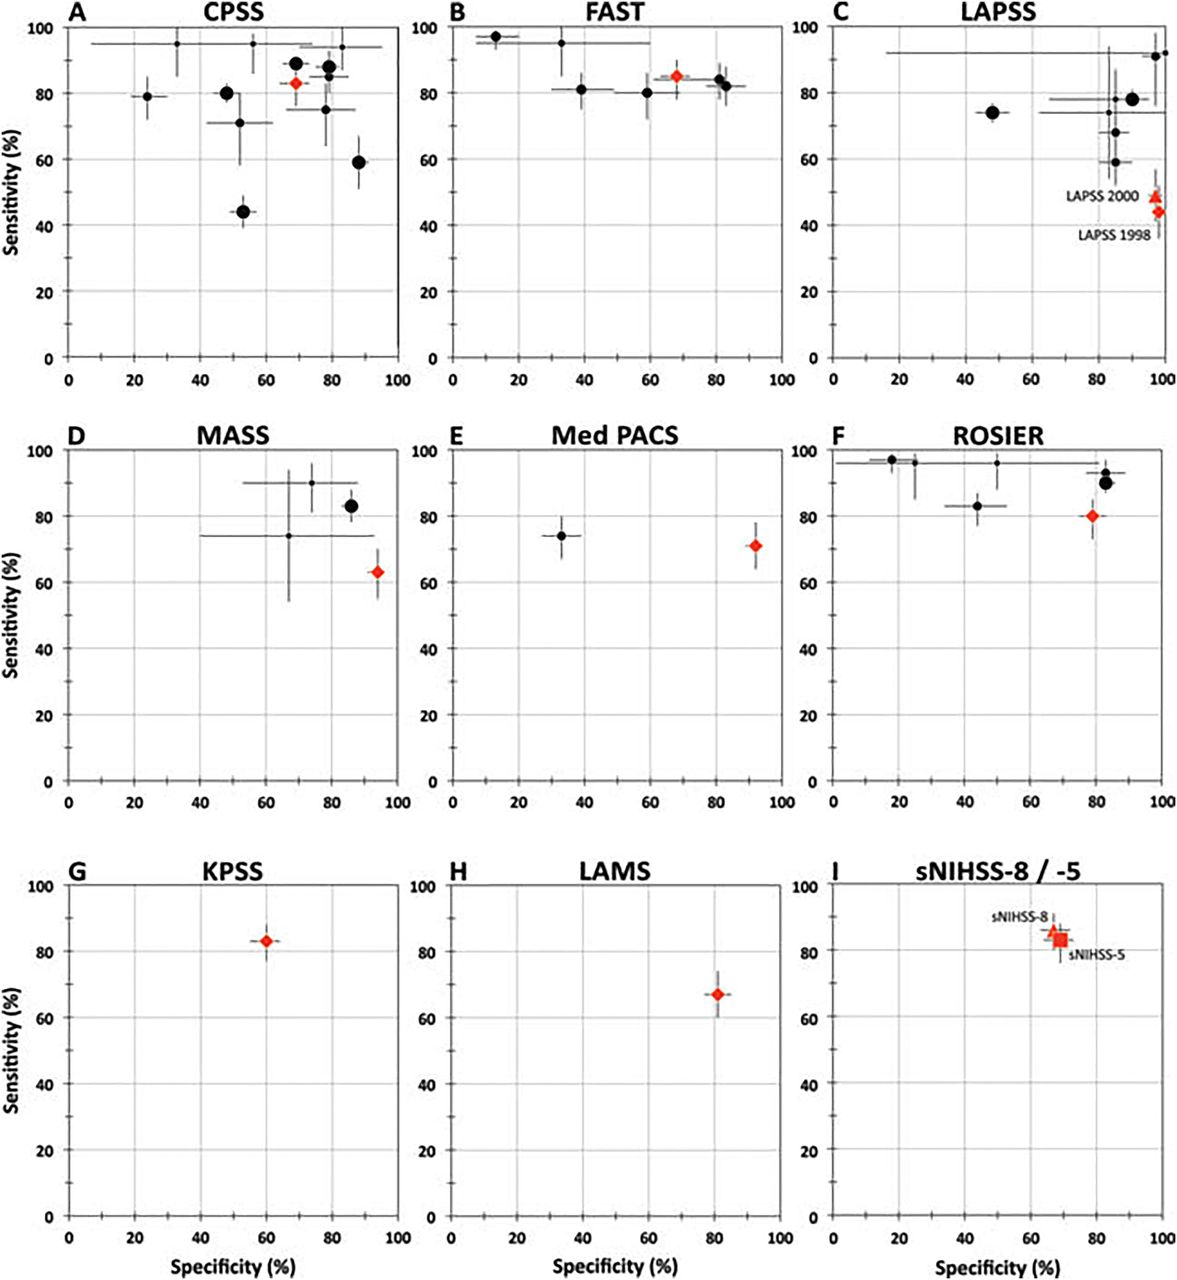 Comparison Of Stroke Recognition And Stroke Severity Scores For